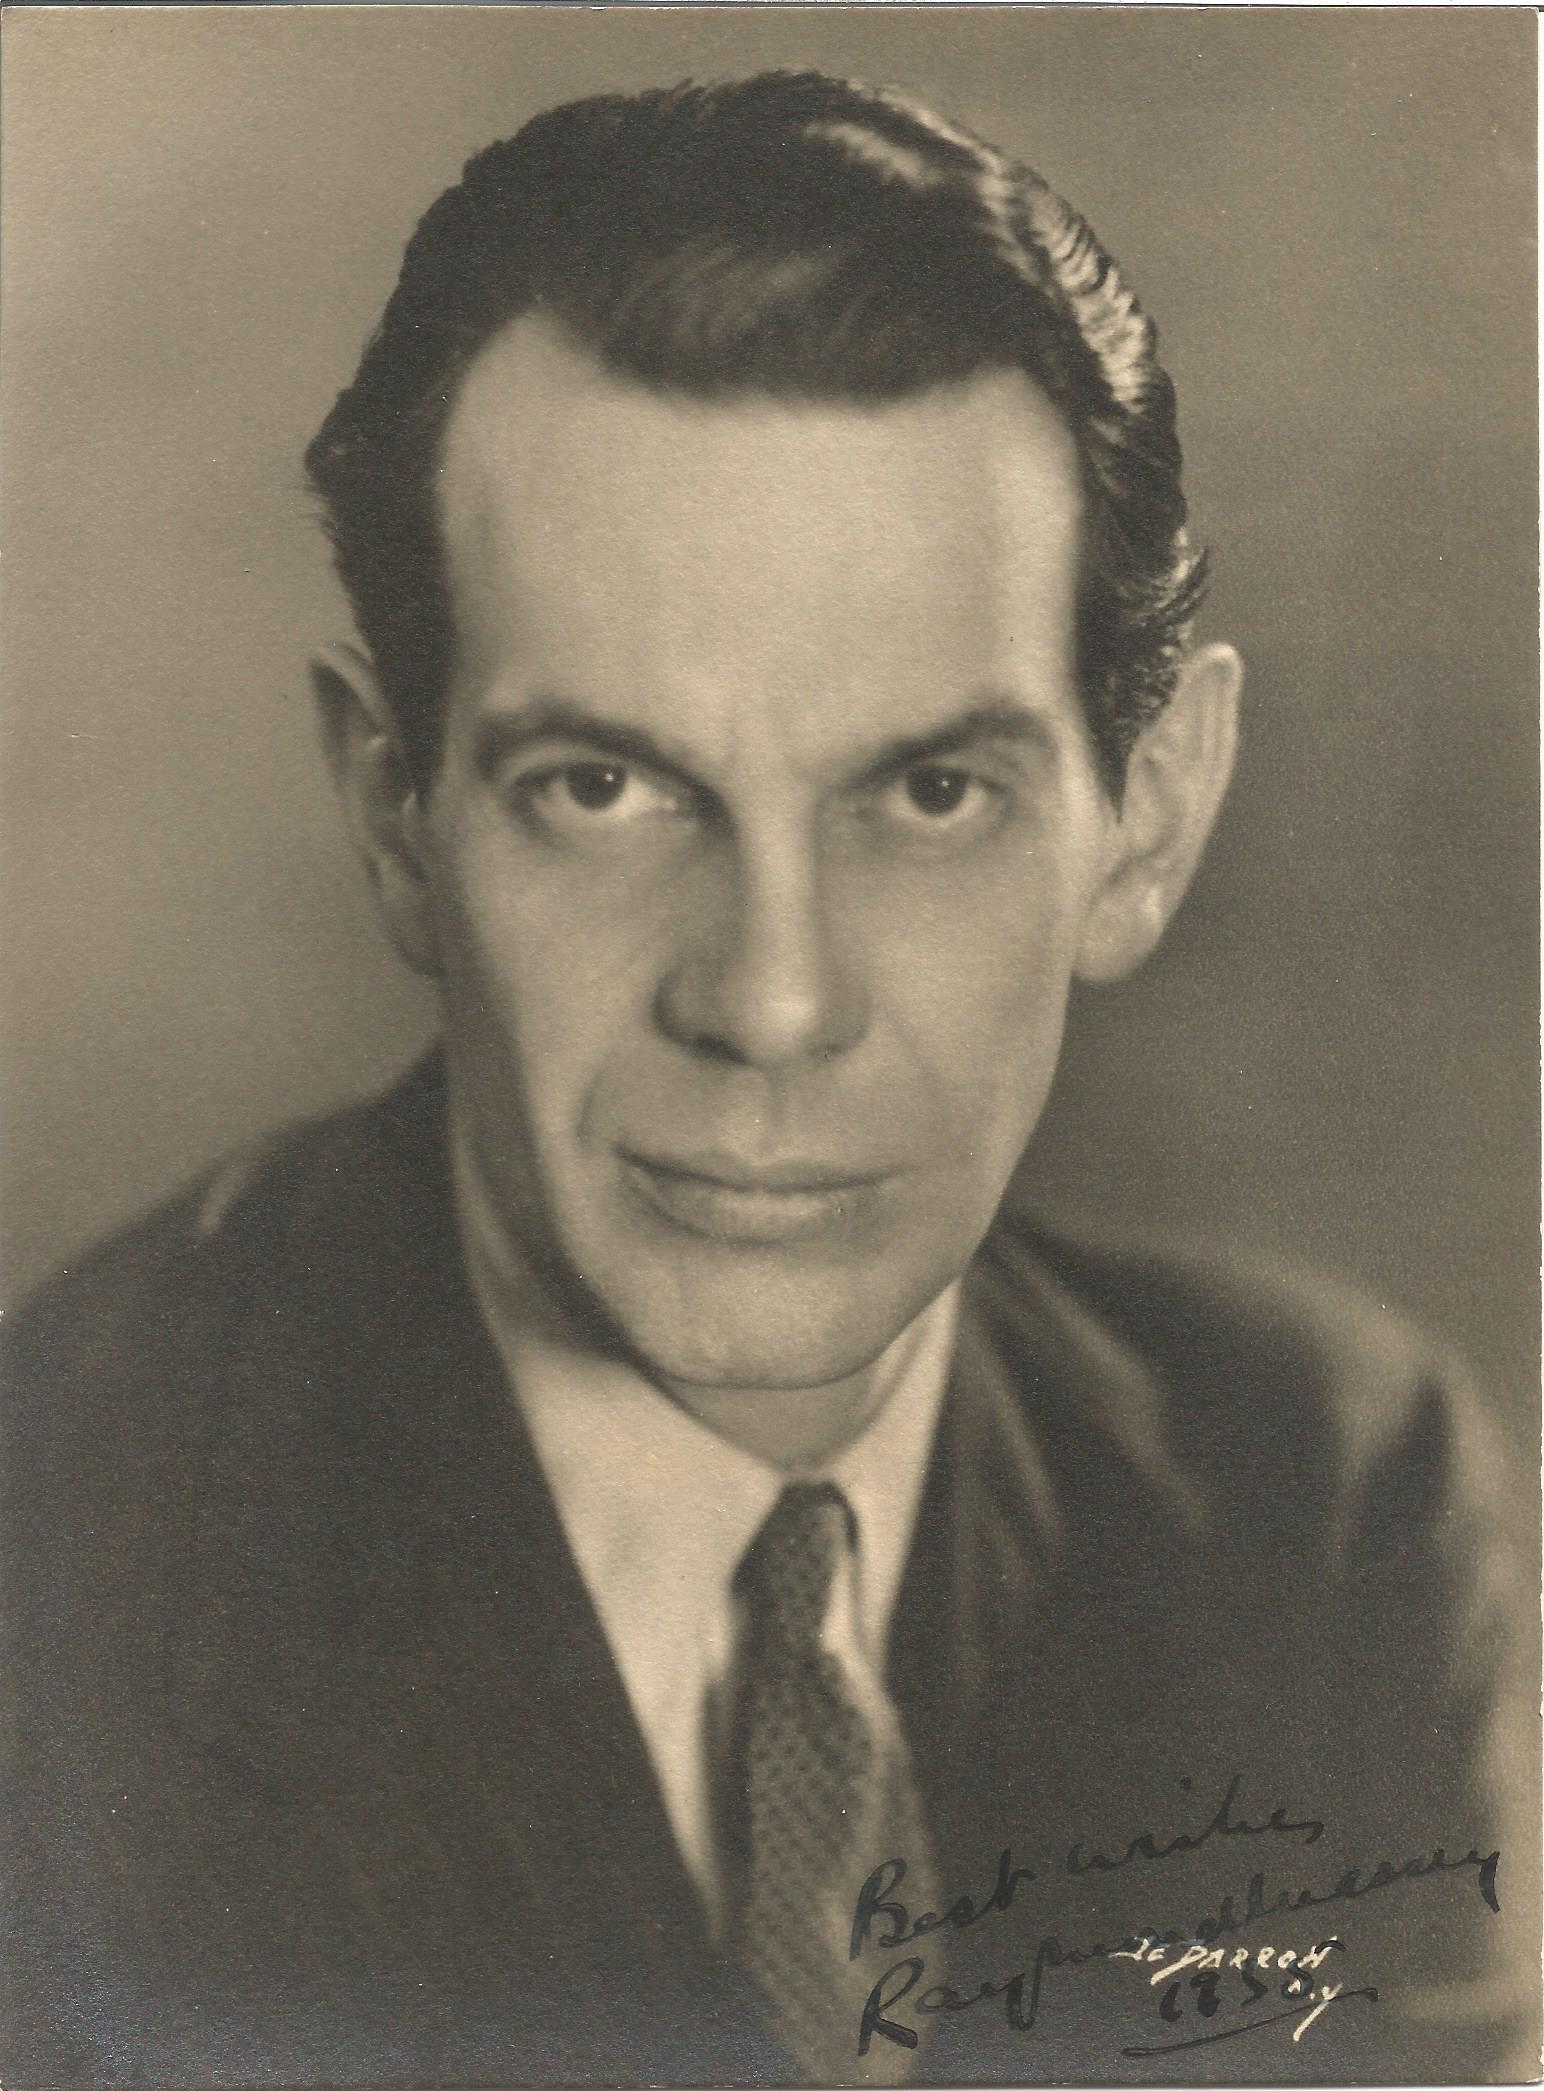 Actor Raymond Massey signed vintage black and white 7½x5 photo. Raymond Hart Massey was a Canadian